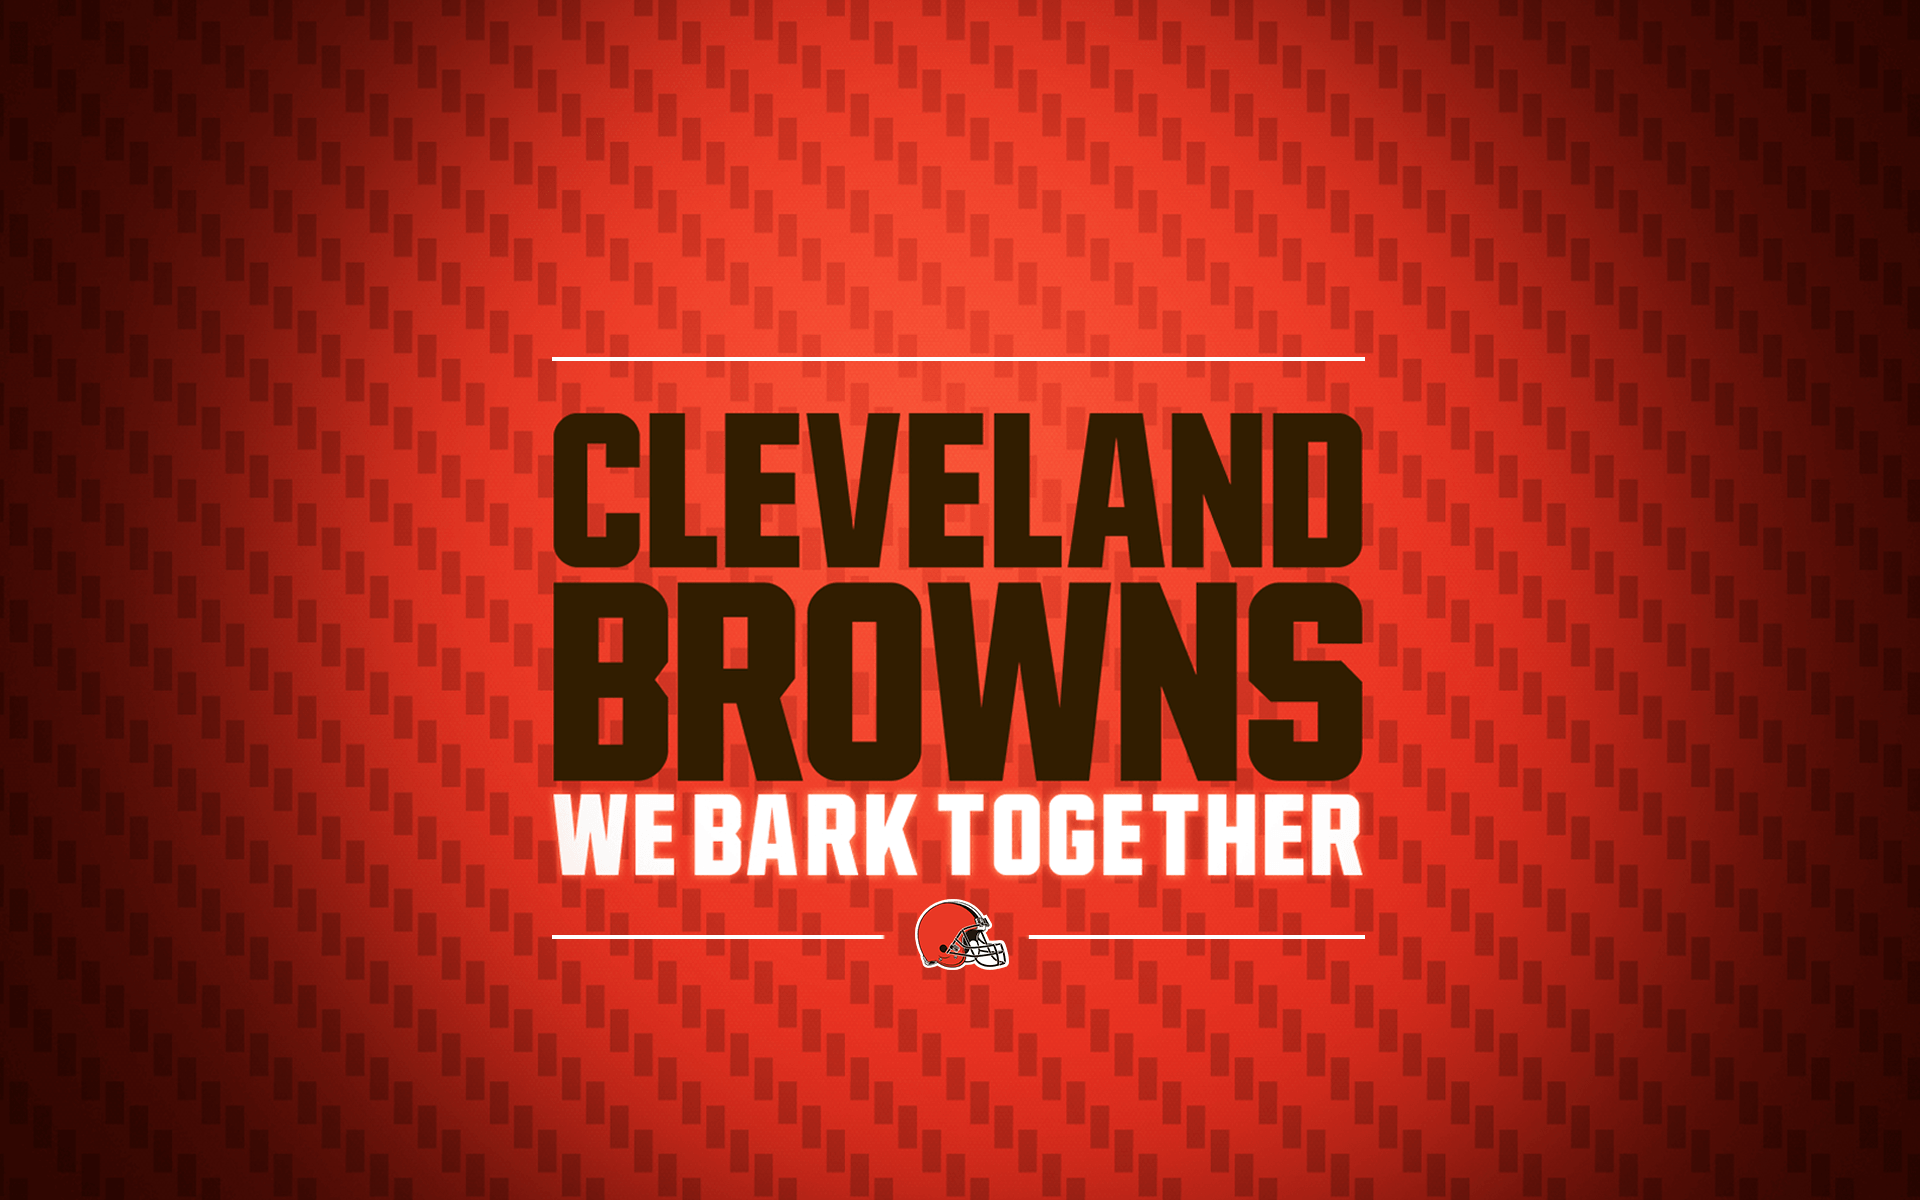 Cleveland Browns On Tv